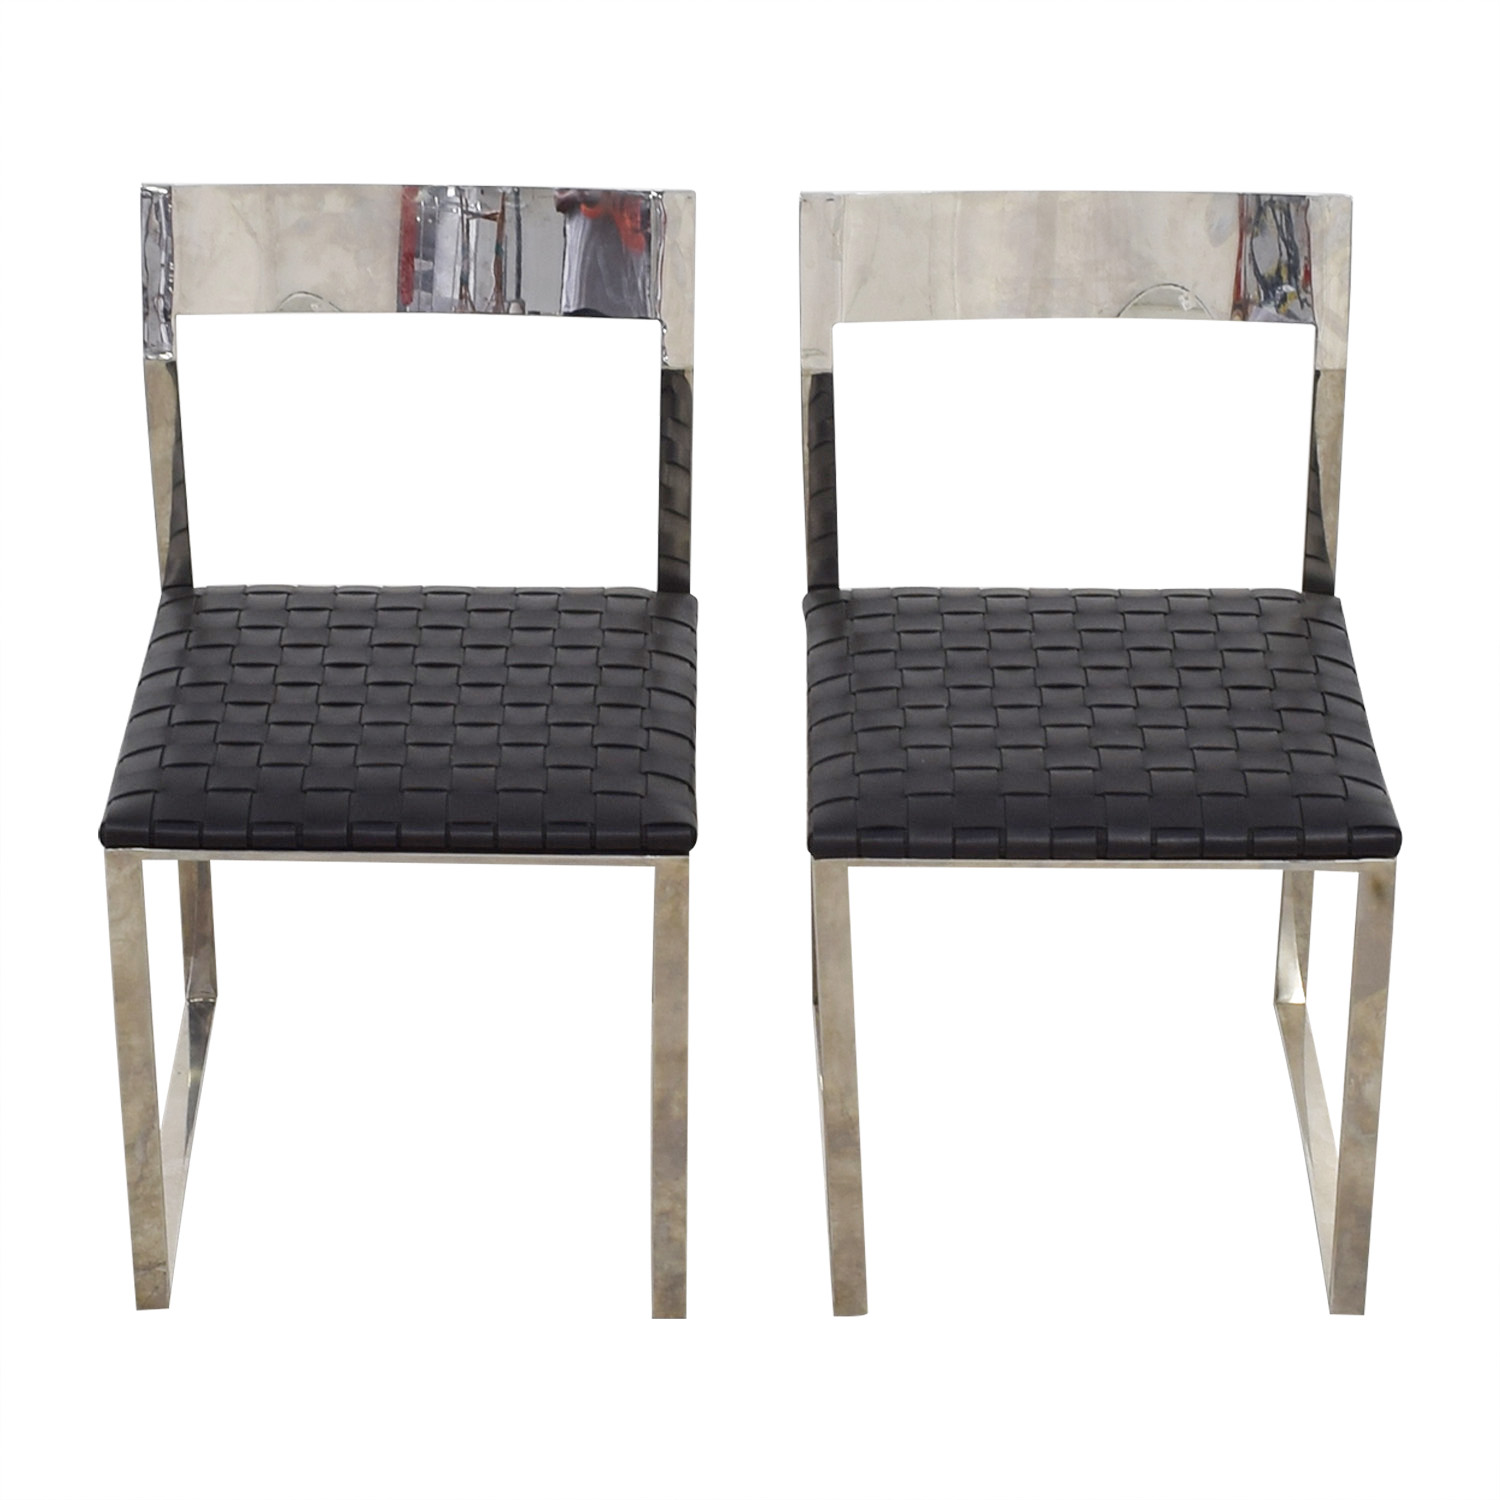 Nuevo Nuevo Camille Black Leather and Mirrored Steel Dining Chairs Chairs